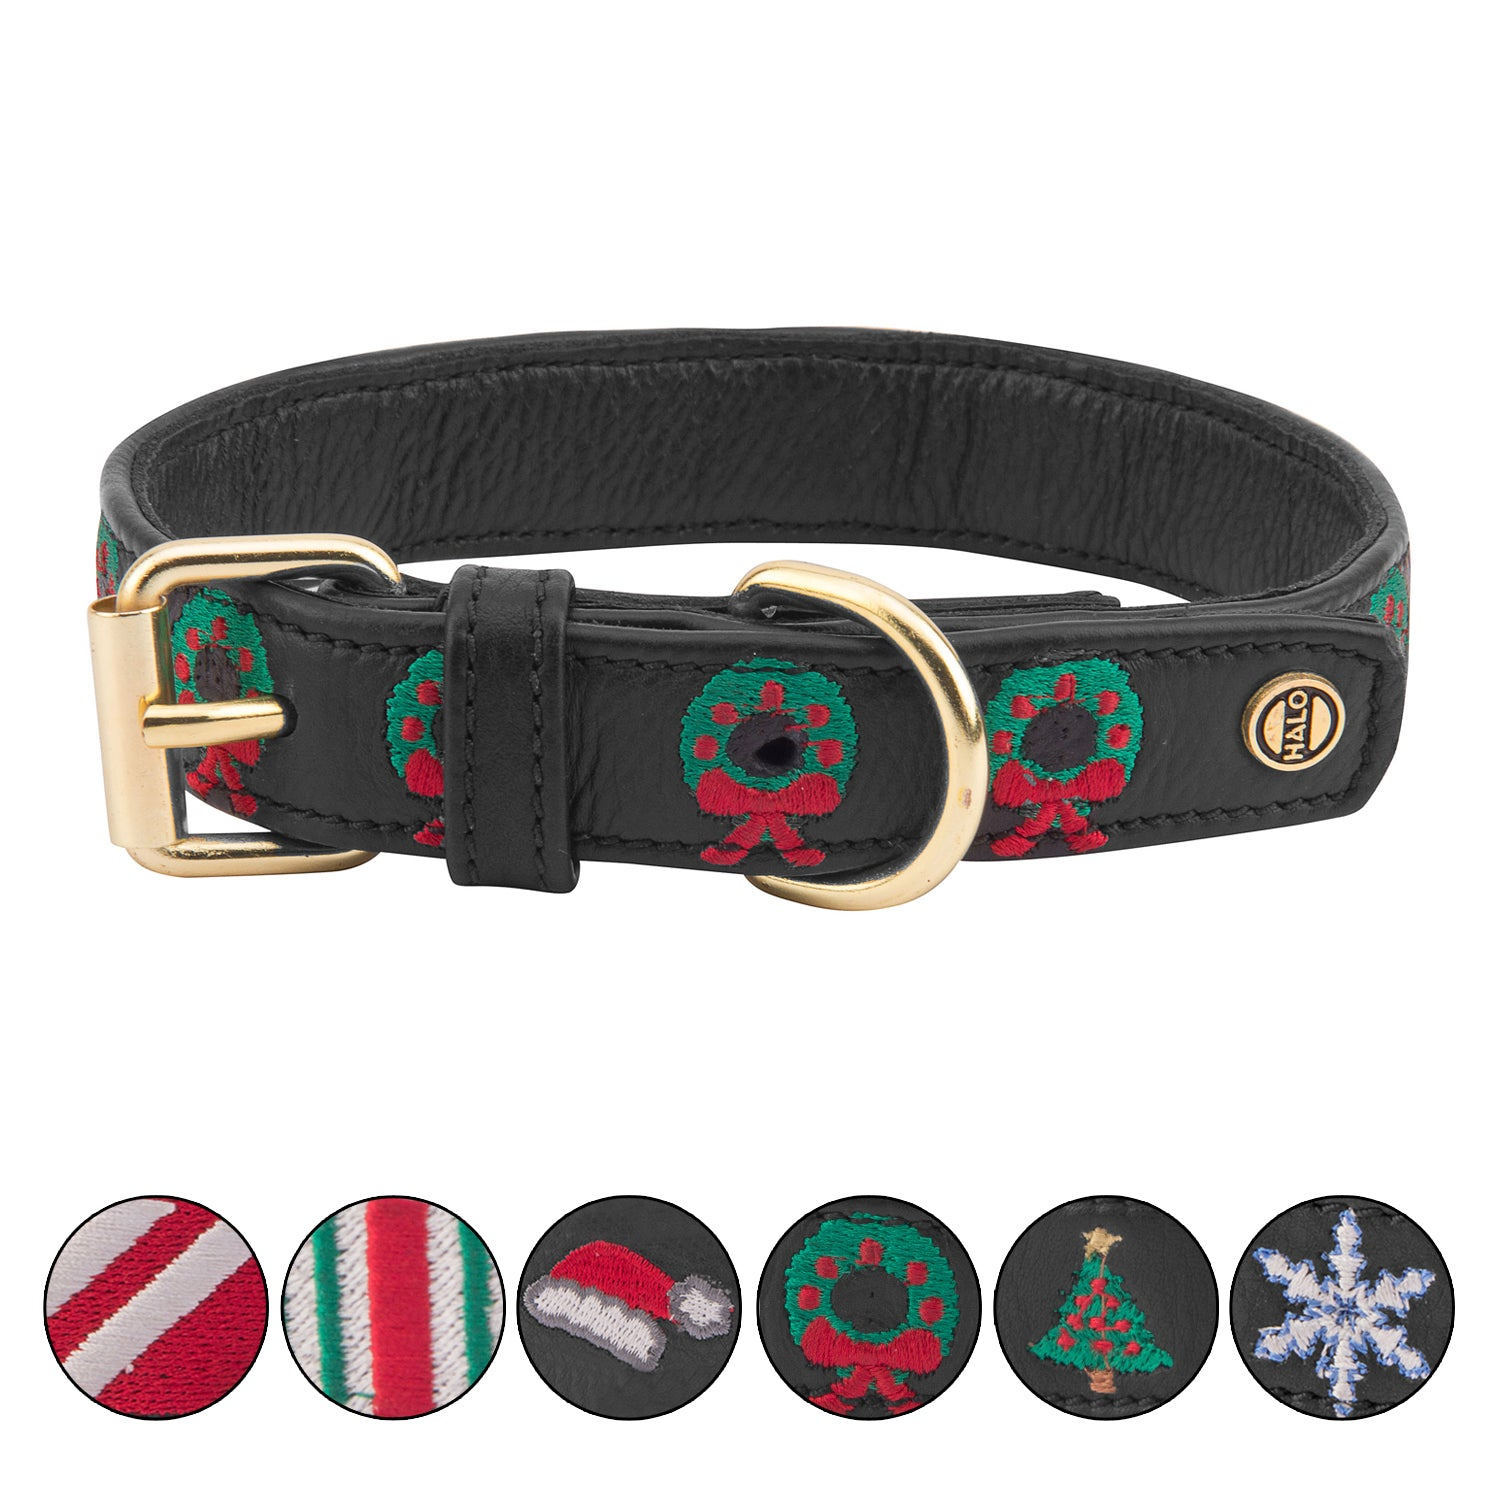 Halo Dog Collar - Leather with Christmas Wreath Embroidery_1